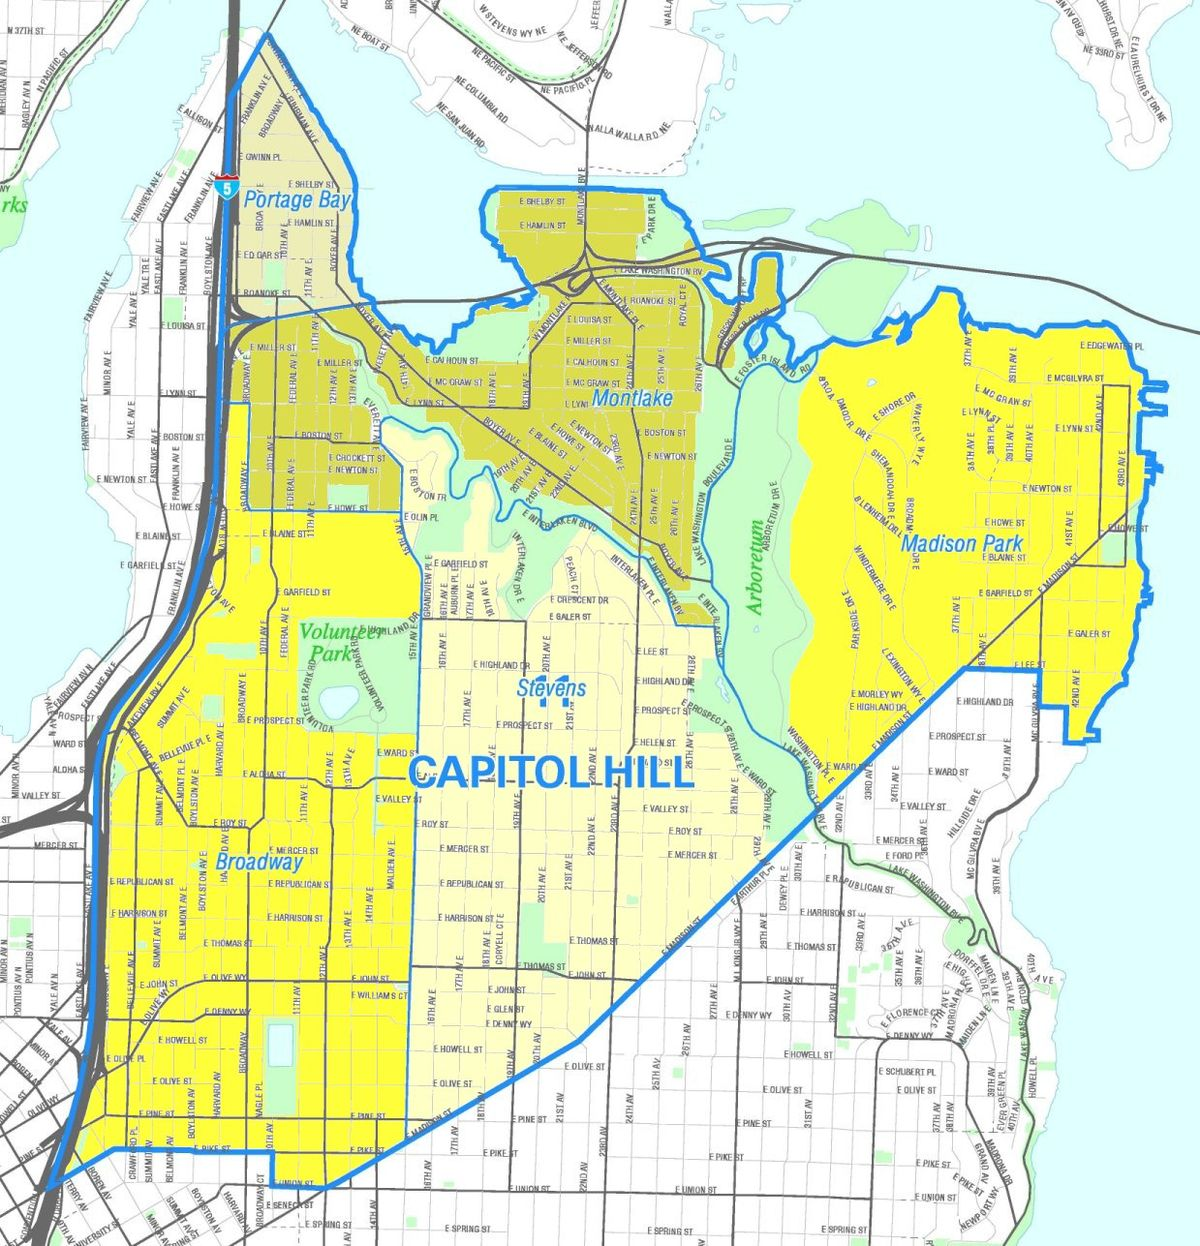 Capitol Hill Seattle Map File:Seattle   Capitol Hill map.   Wikimedia Commons